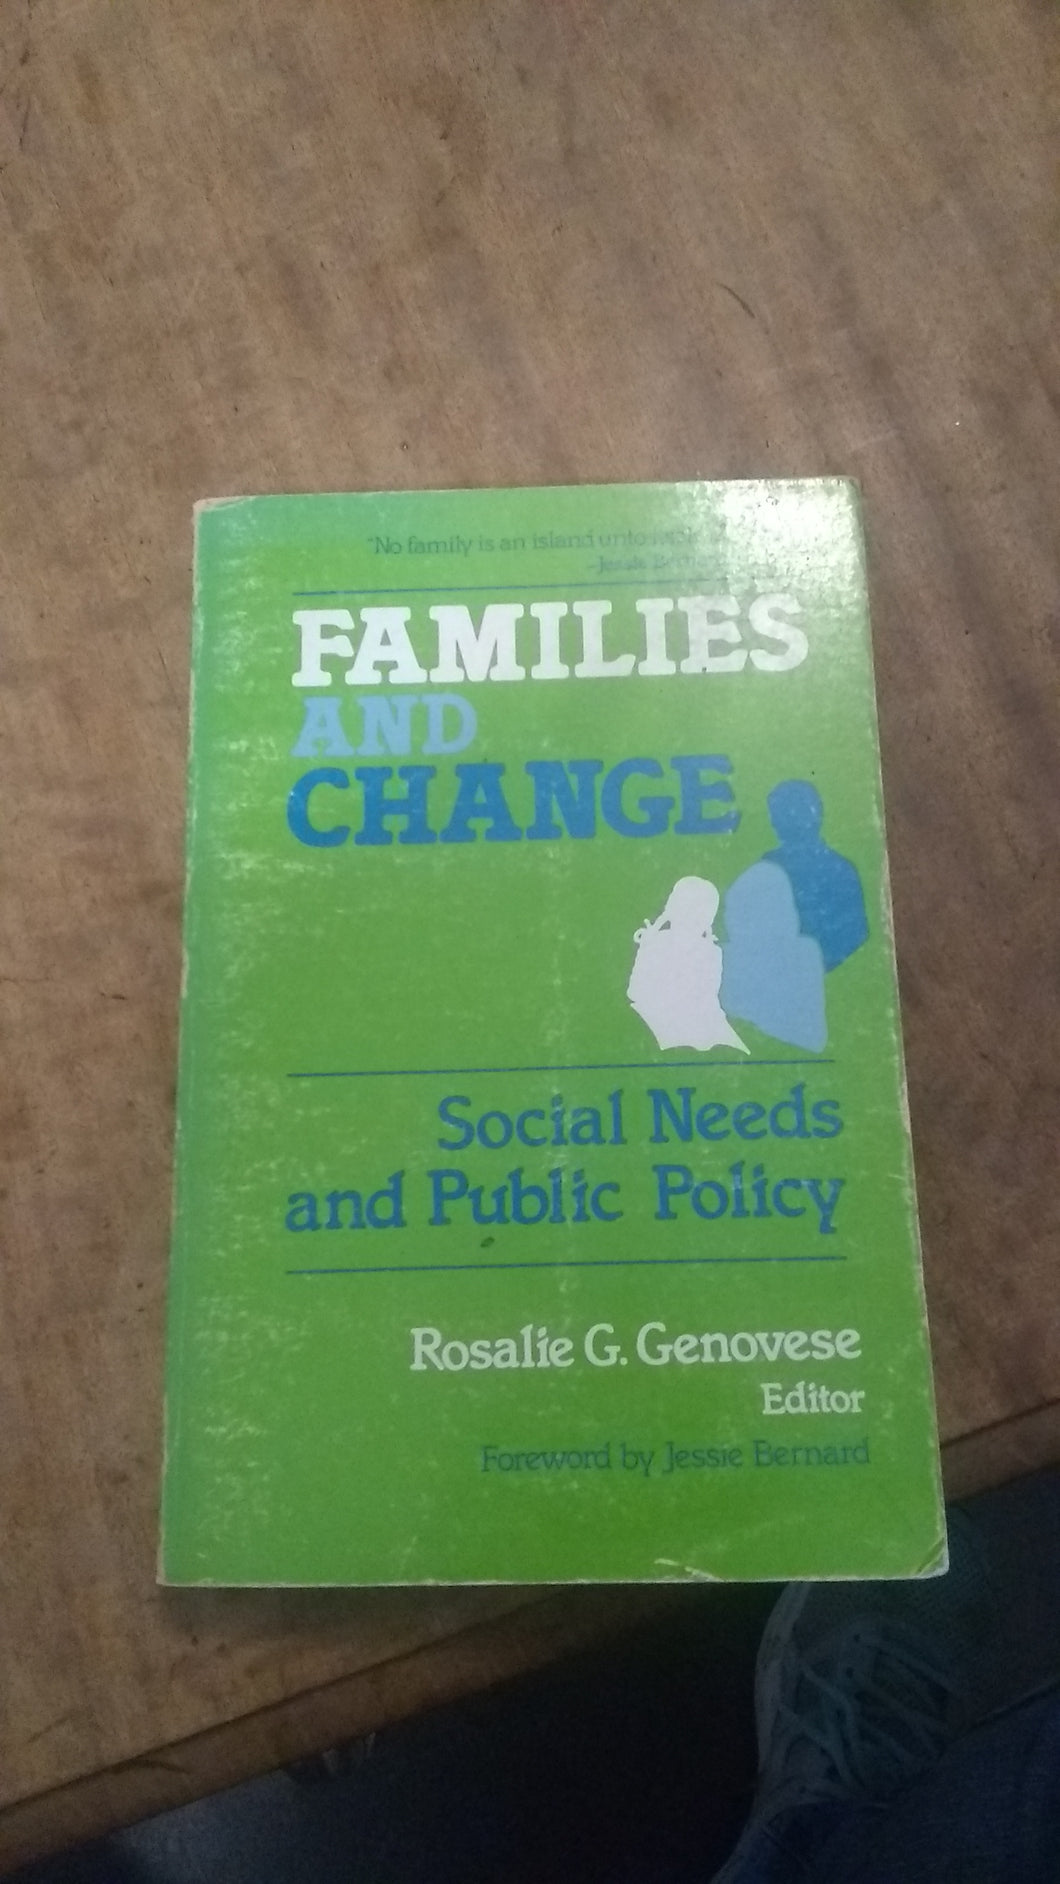 Families and Change: Social Needs and Public Policy